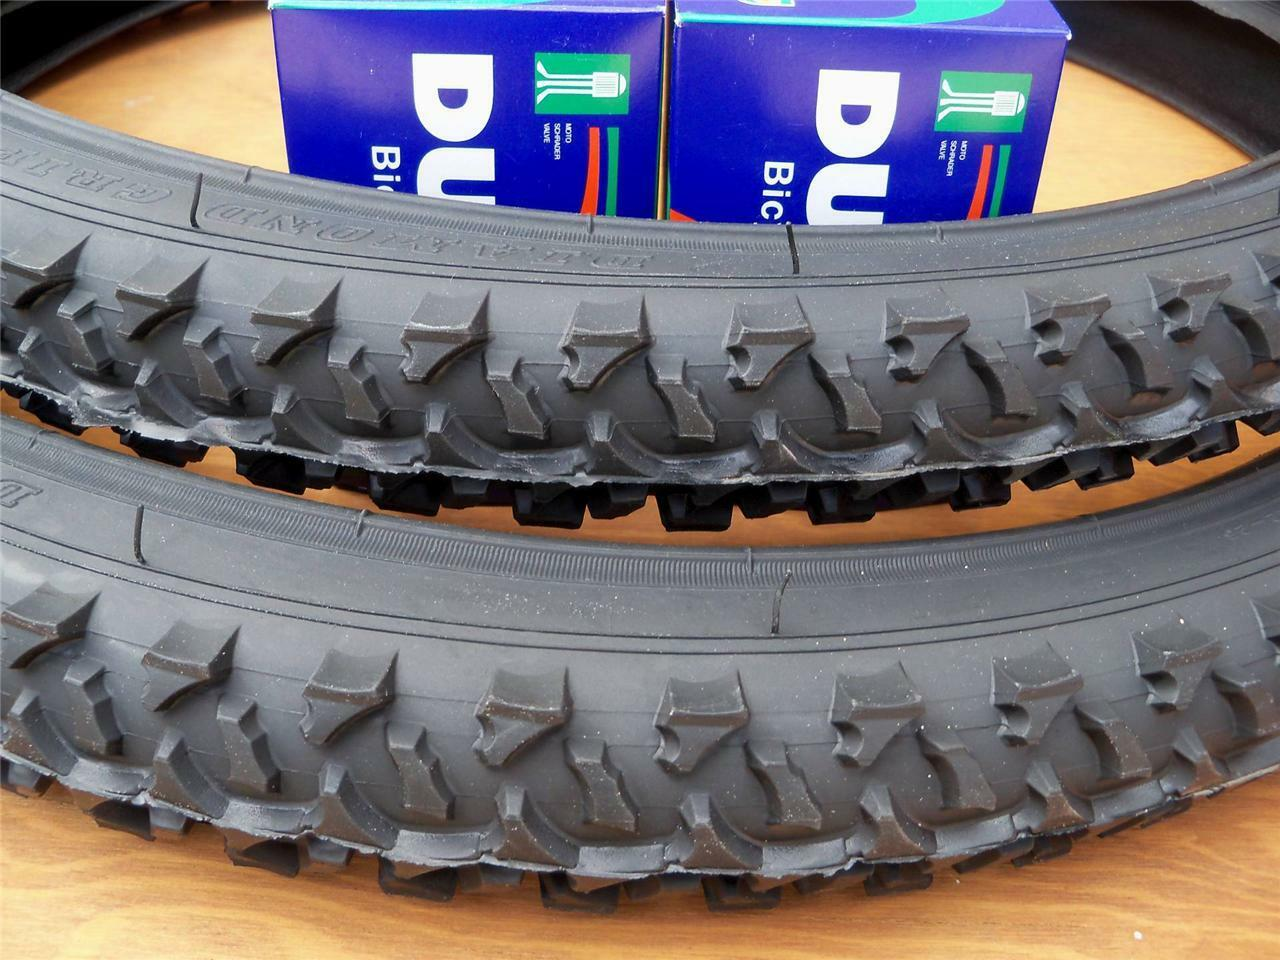 New 24x1.95 Mountain Bicycle Tires and Tubes  Tires &  Tubes